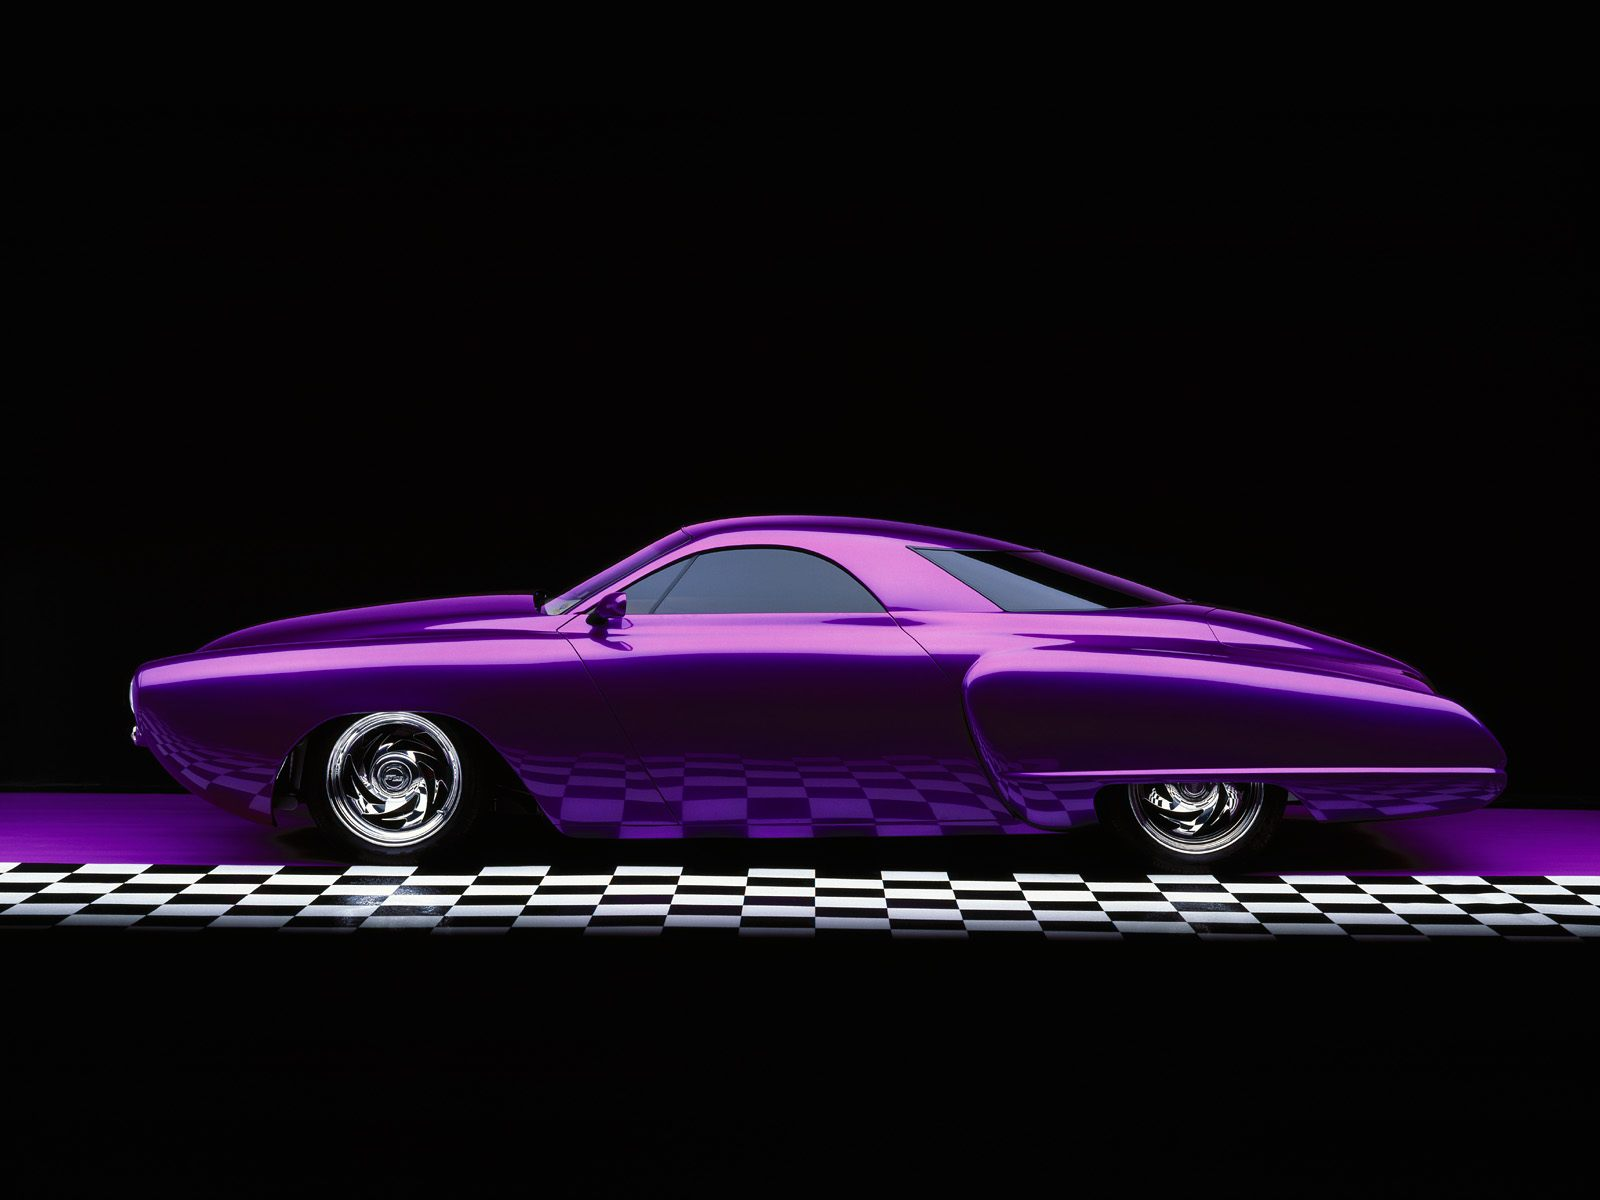 Hd-Car wallpapers: cool backgrounds cars